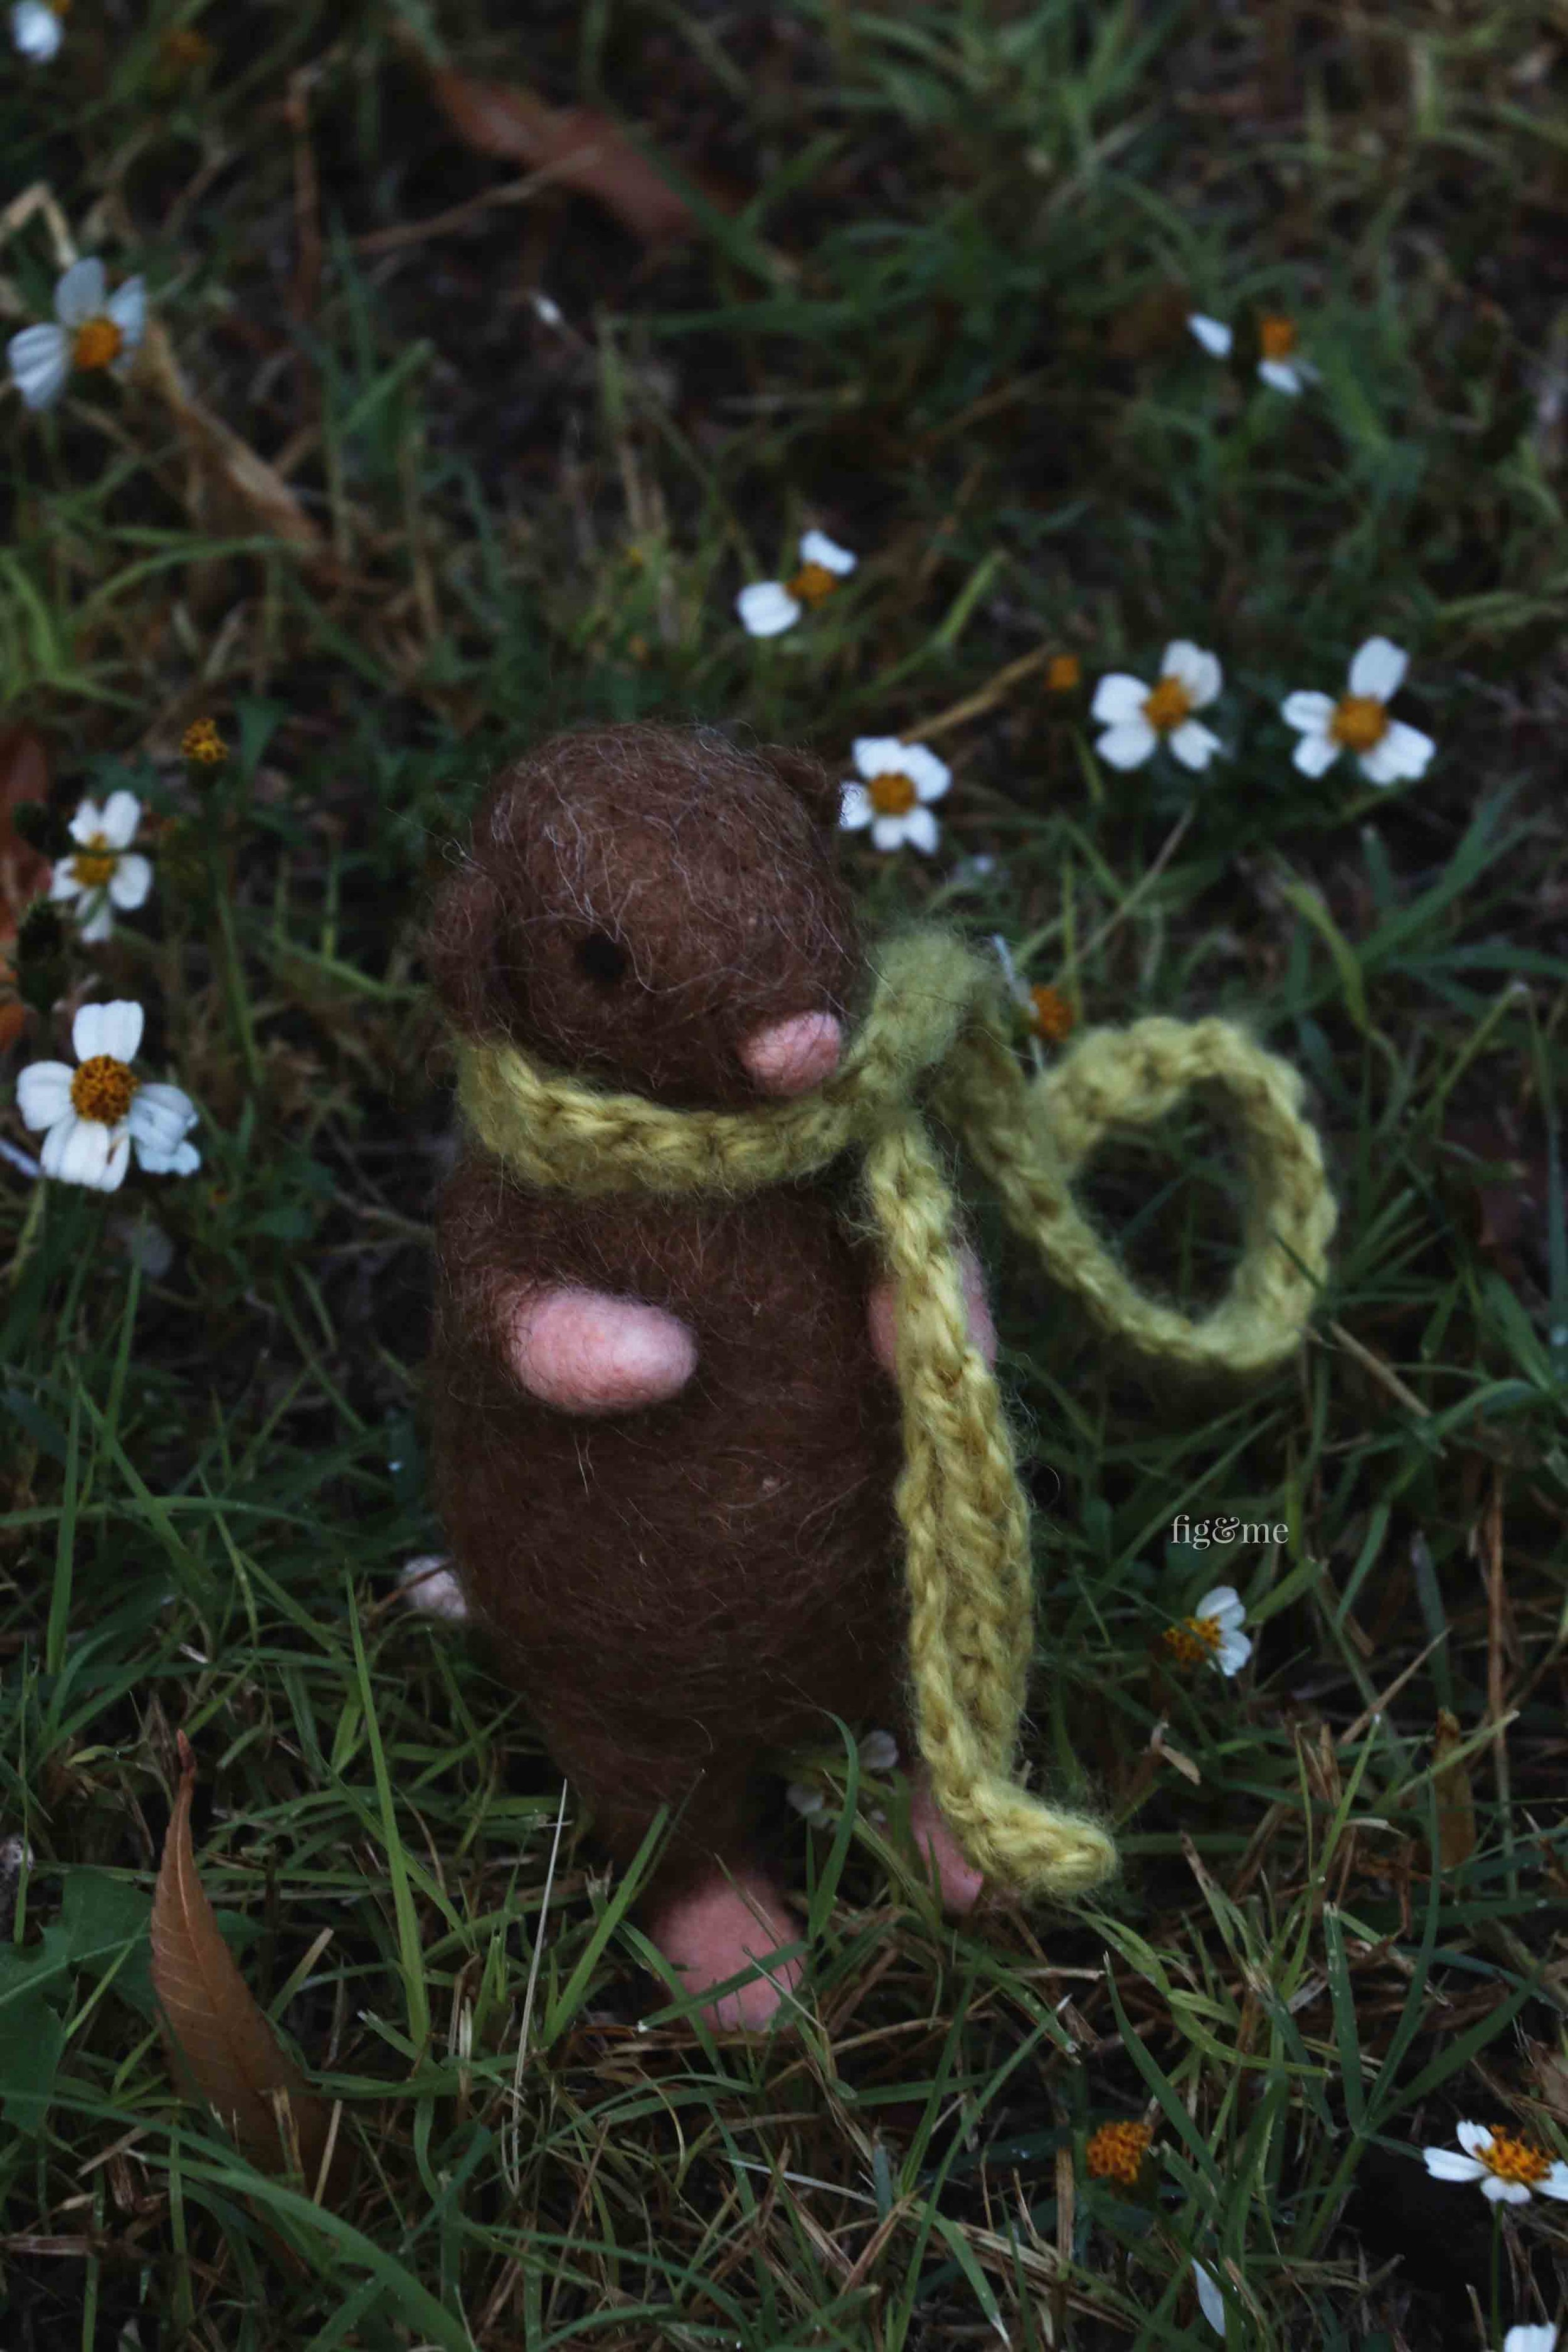 Little Twig, a needle-felted rat made of wool over a wire armature. By Fig and Me.